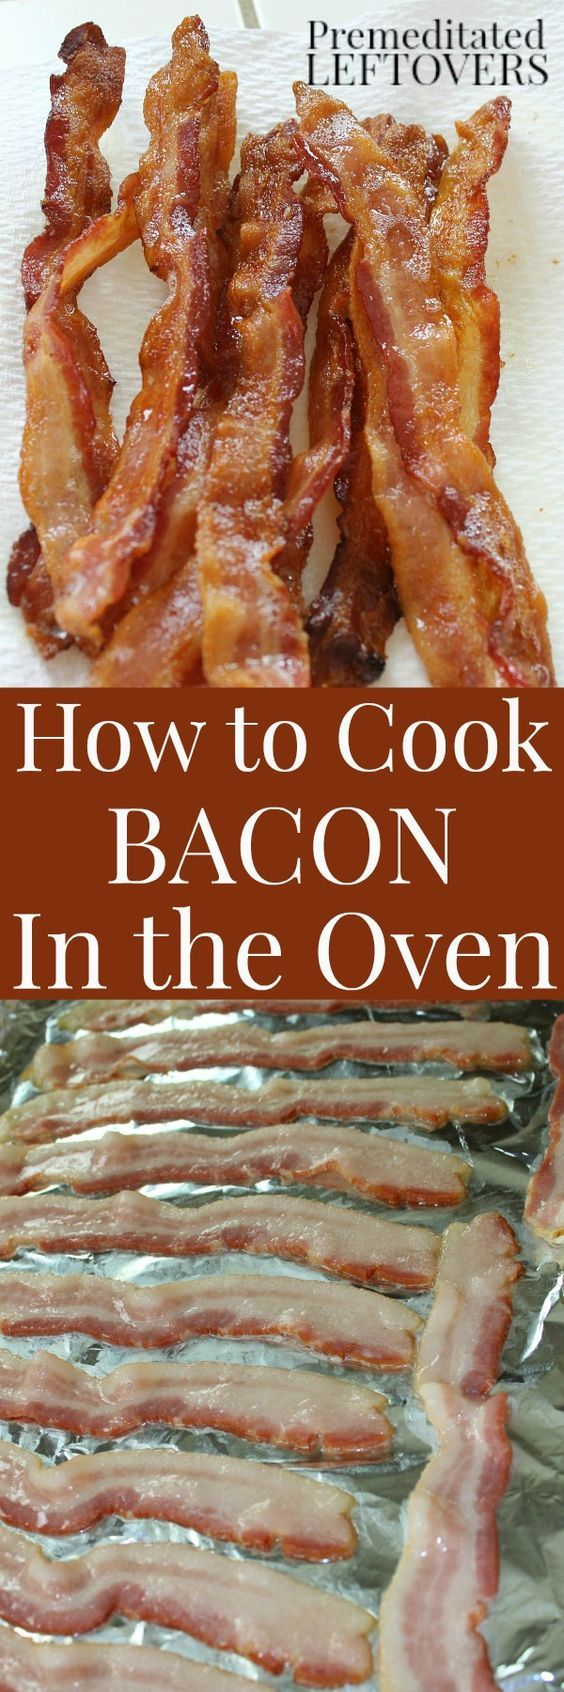 You Can Cook Bacon In The Oven You Are Going To Love This Tip For